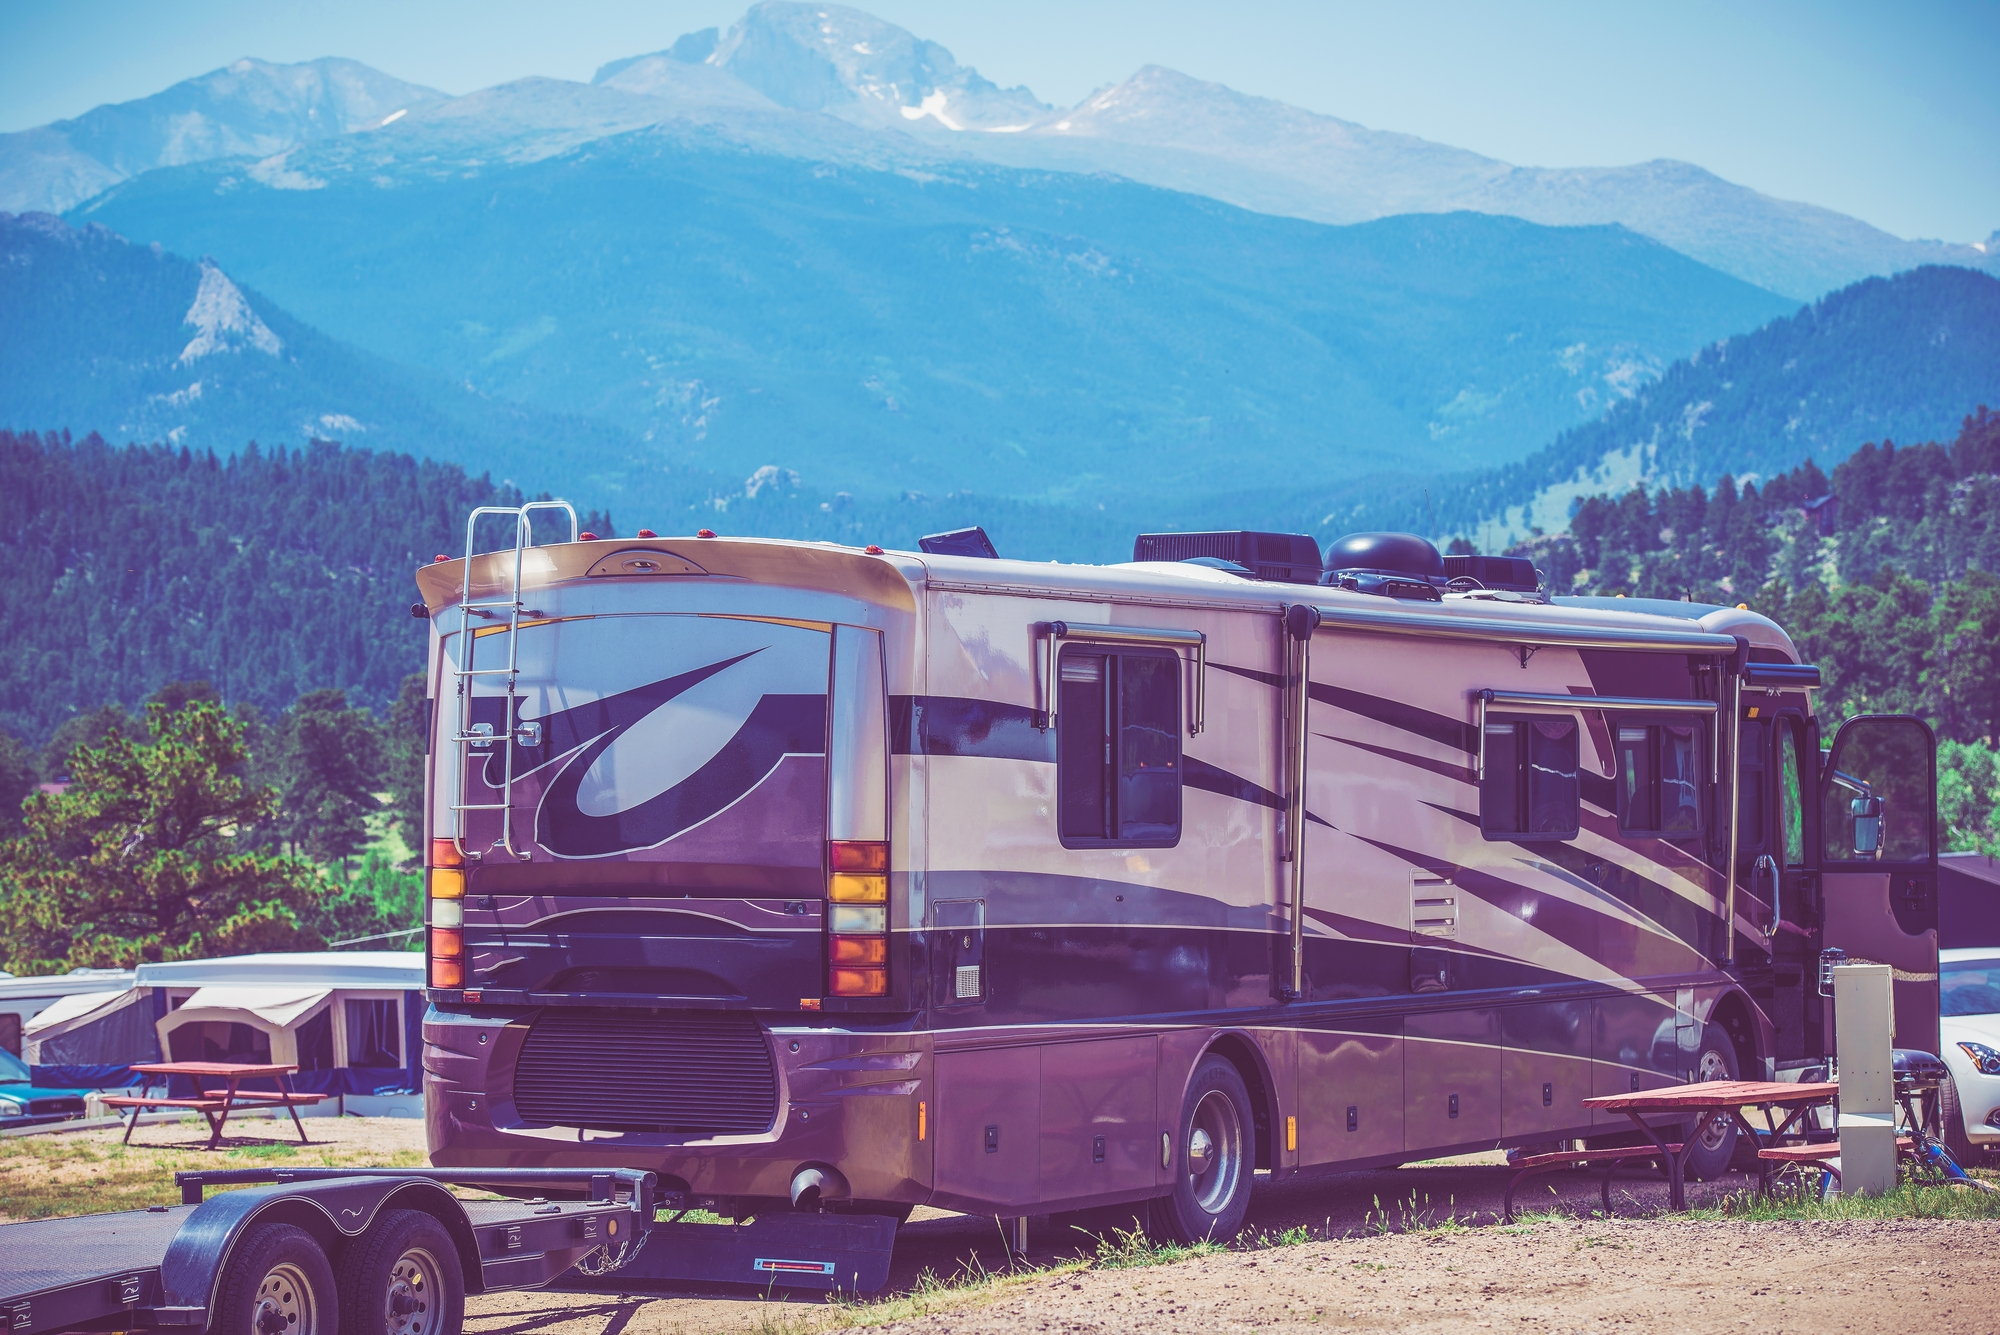 Motorhome towing a trailer